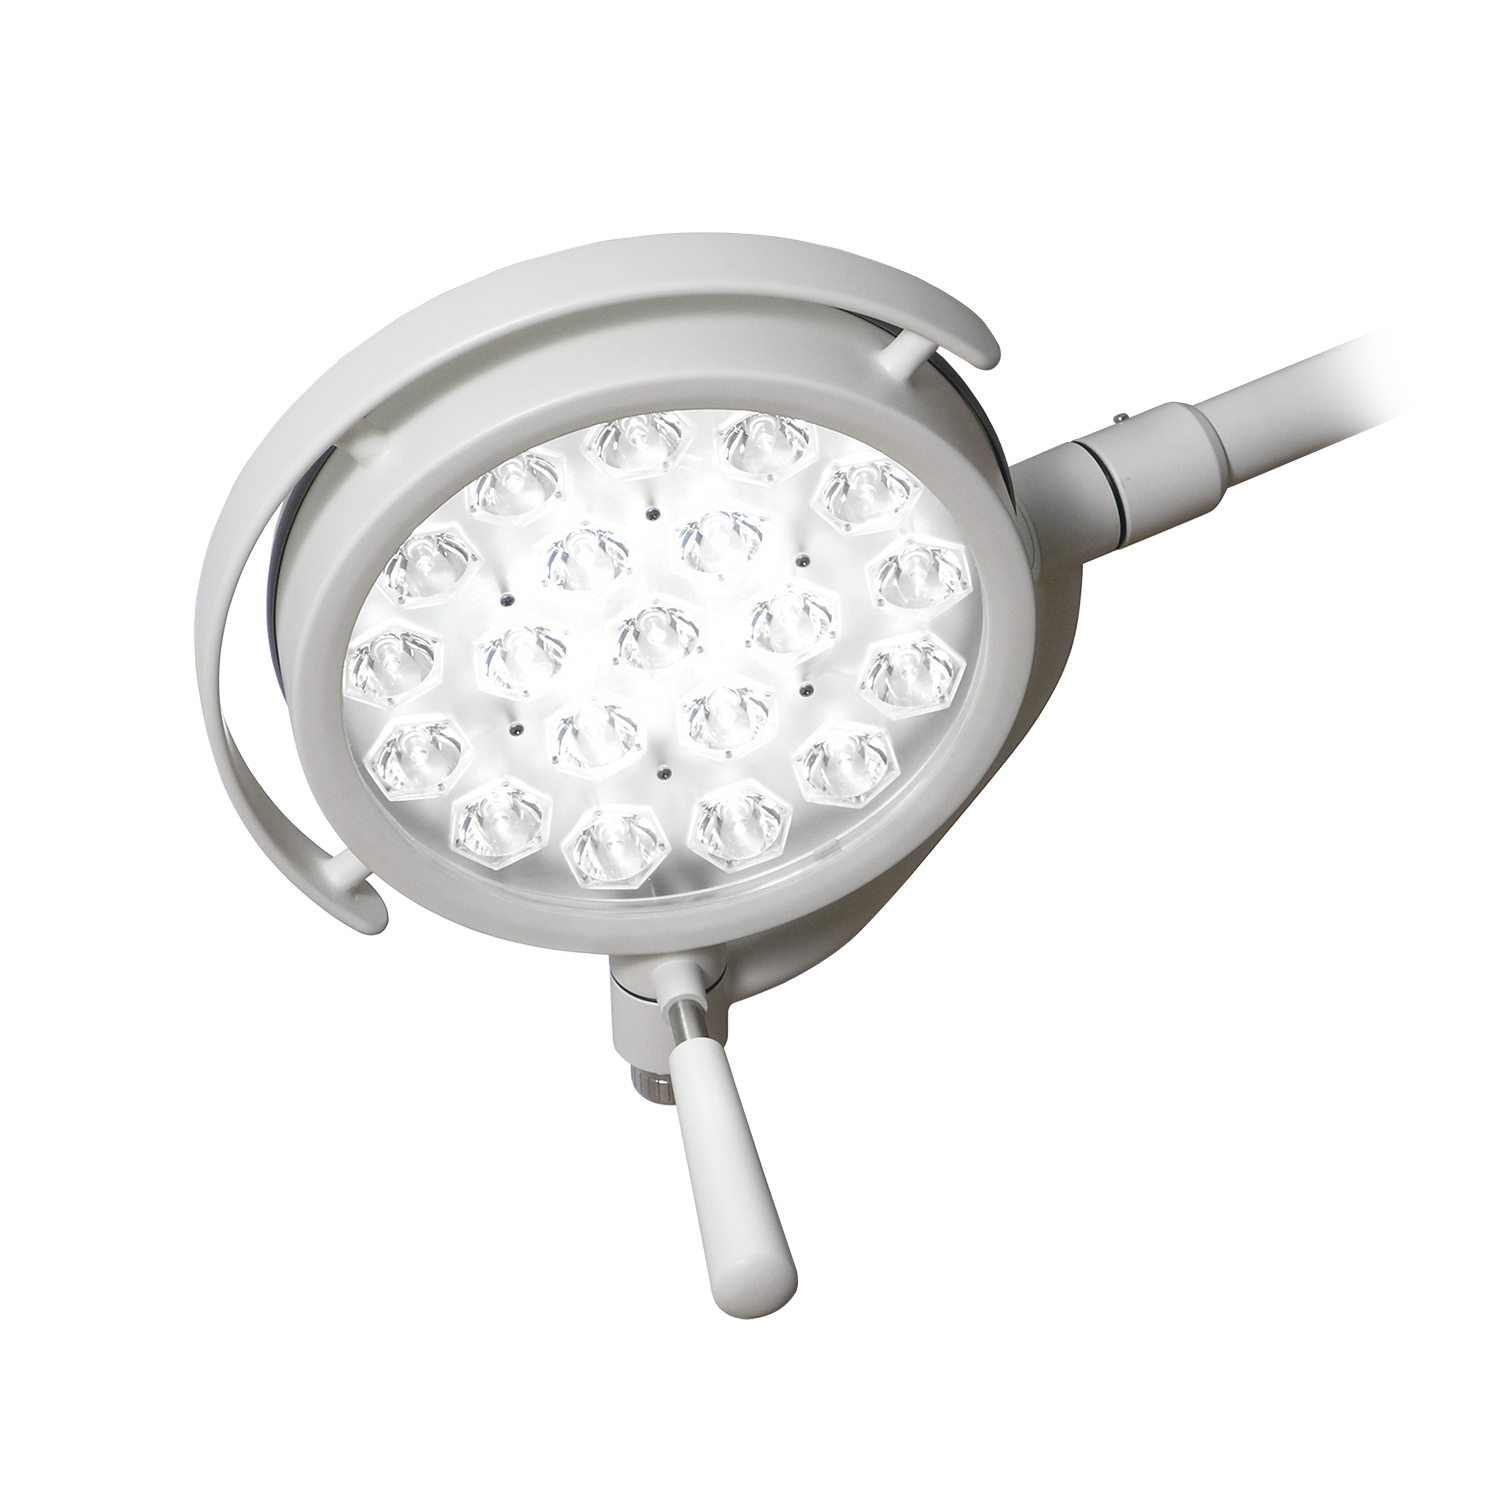 Avante SLS 2500 LED Surgical Lights